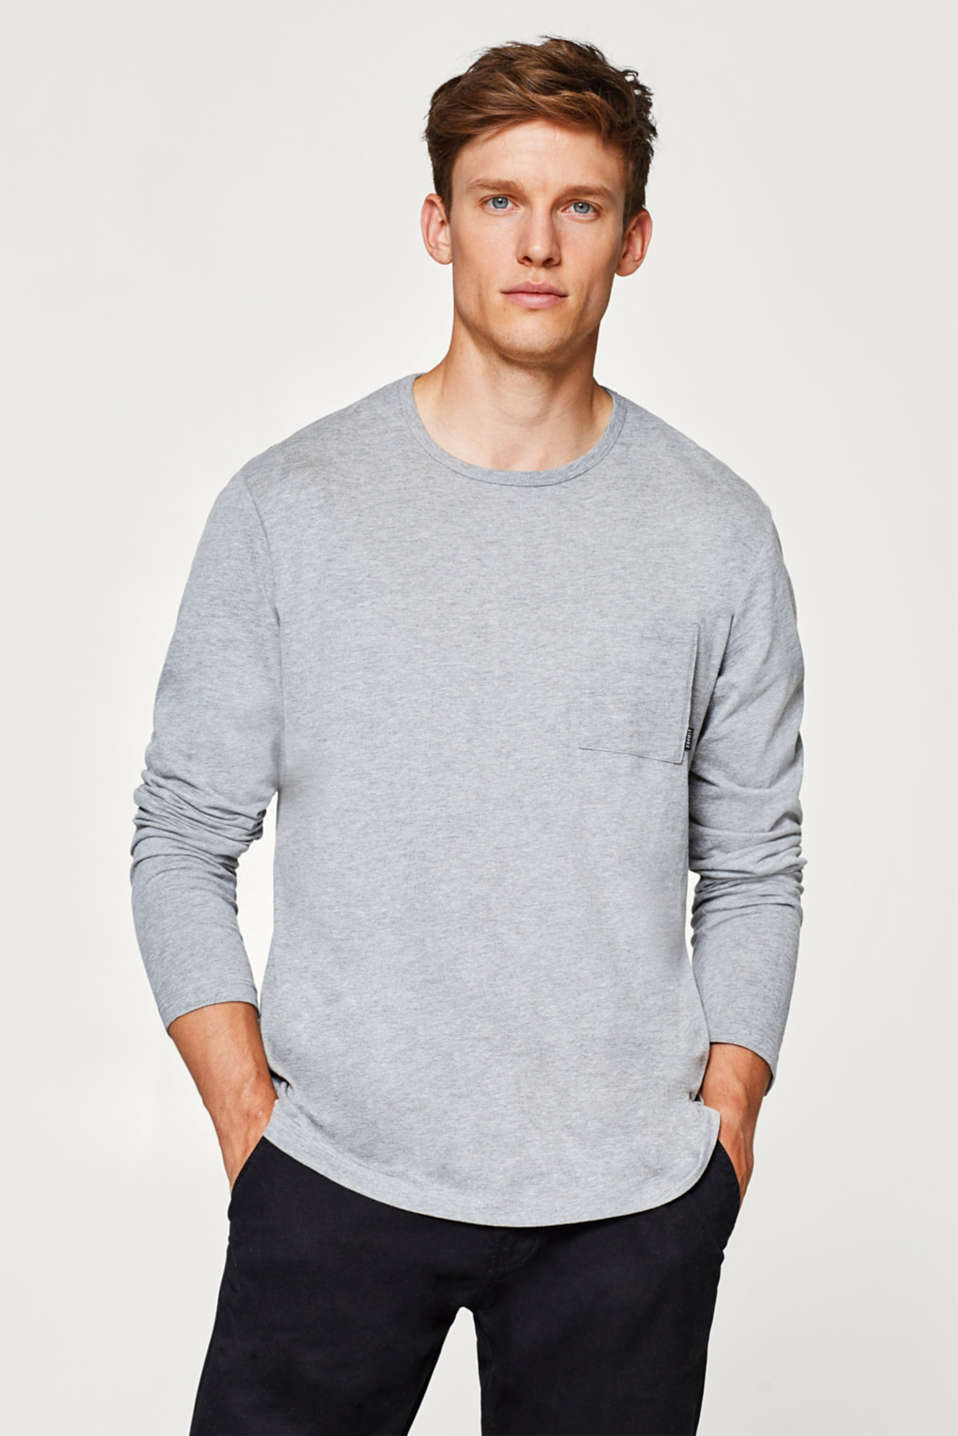 Esprit - Long sleeve top made of melange jersey